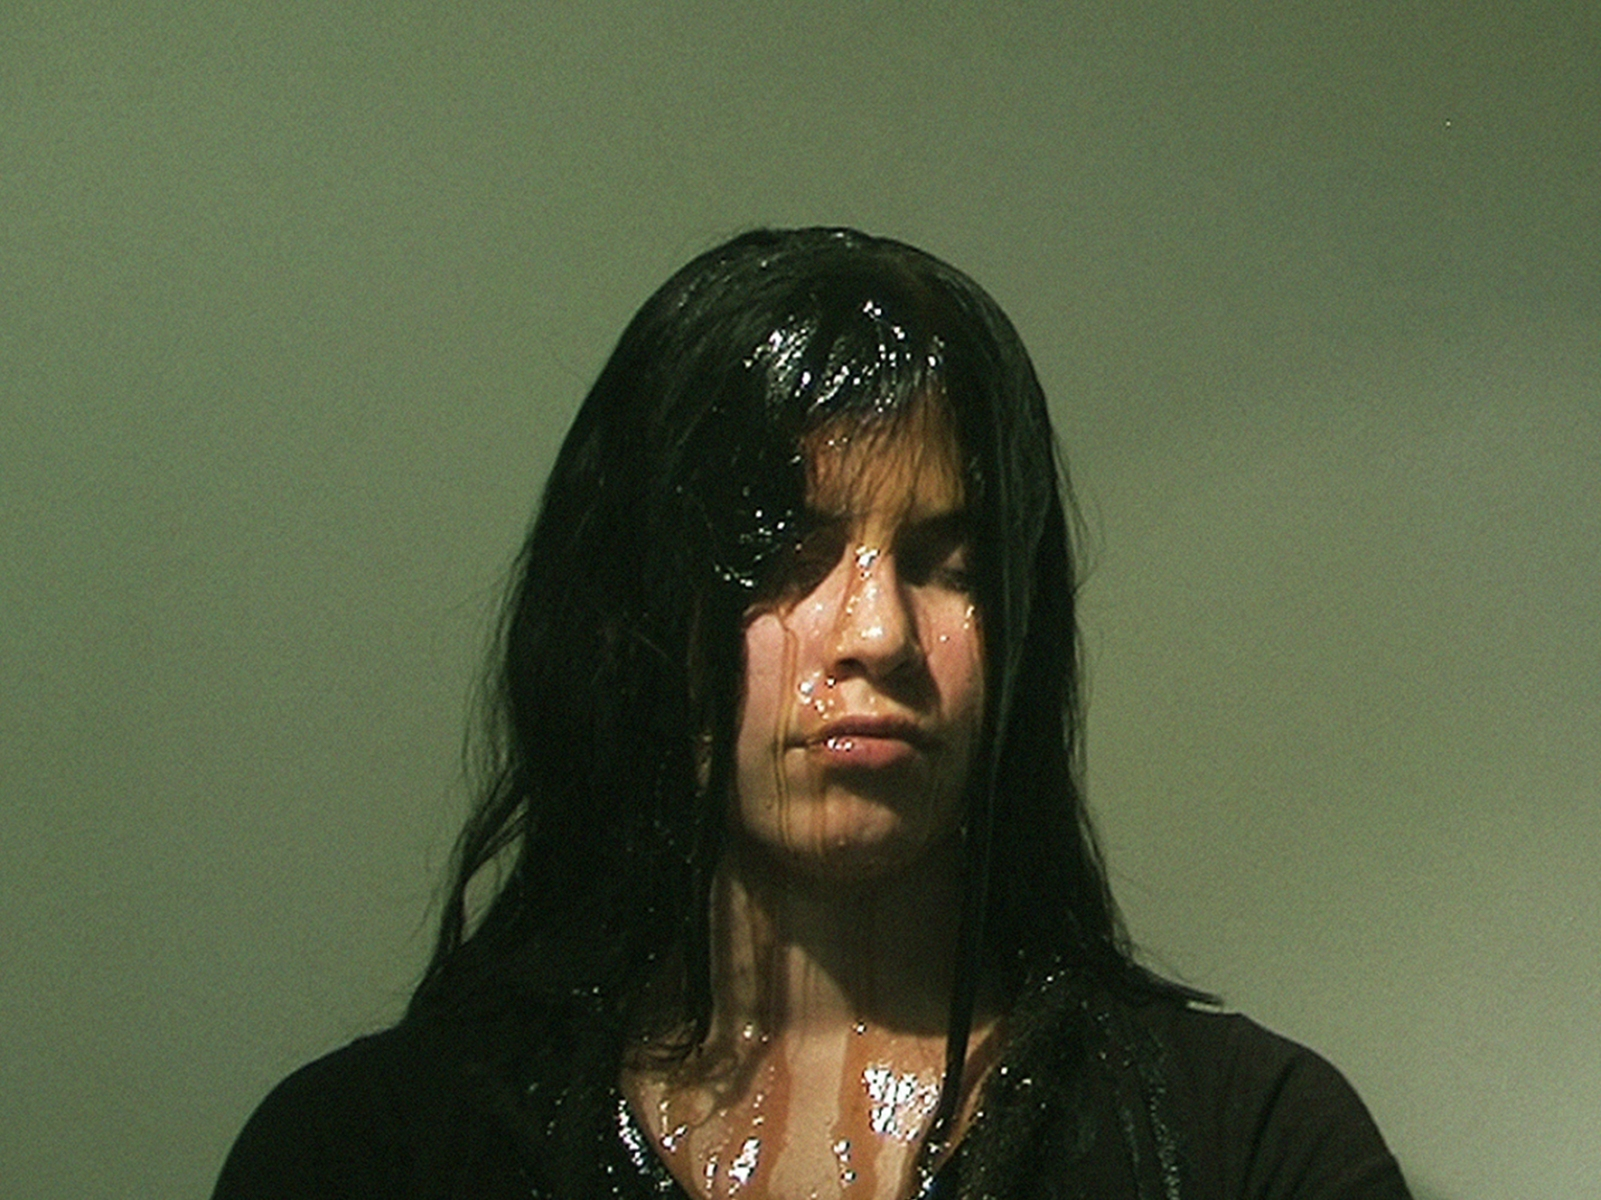 9. A drop of honey, 2013 - Performance, Video Still (Naivy Perez)